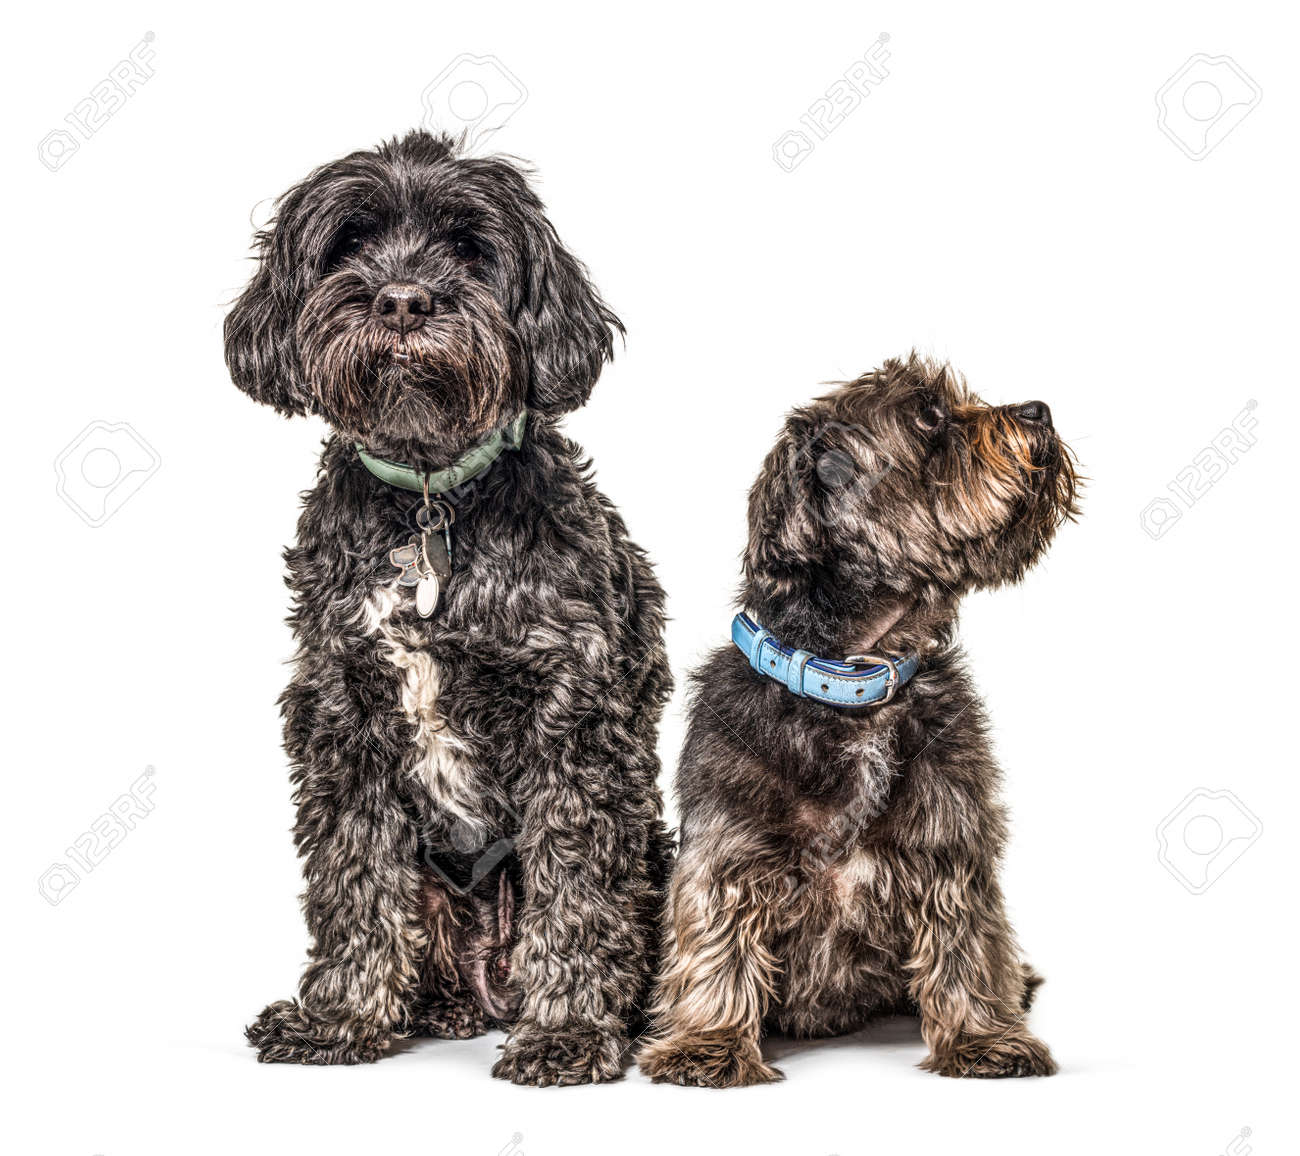 Two crossbreed dogs wearing a blue collar sitting, isolated - 171048977